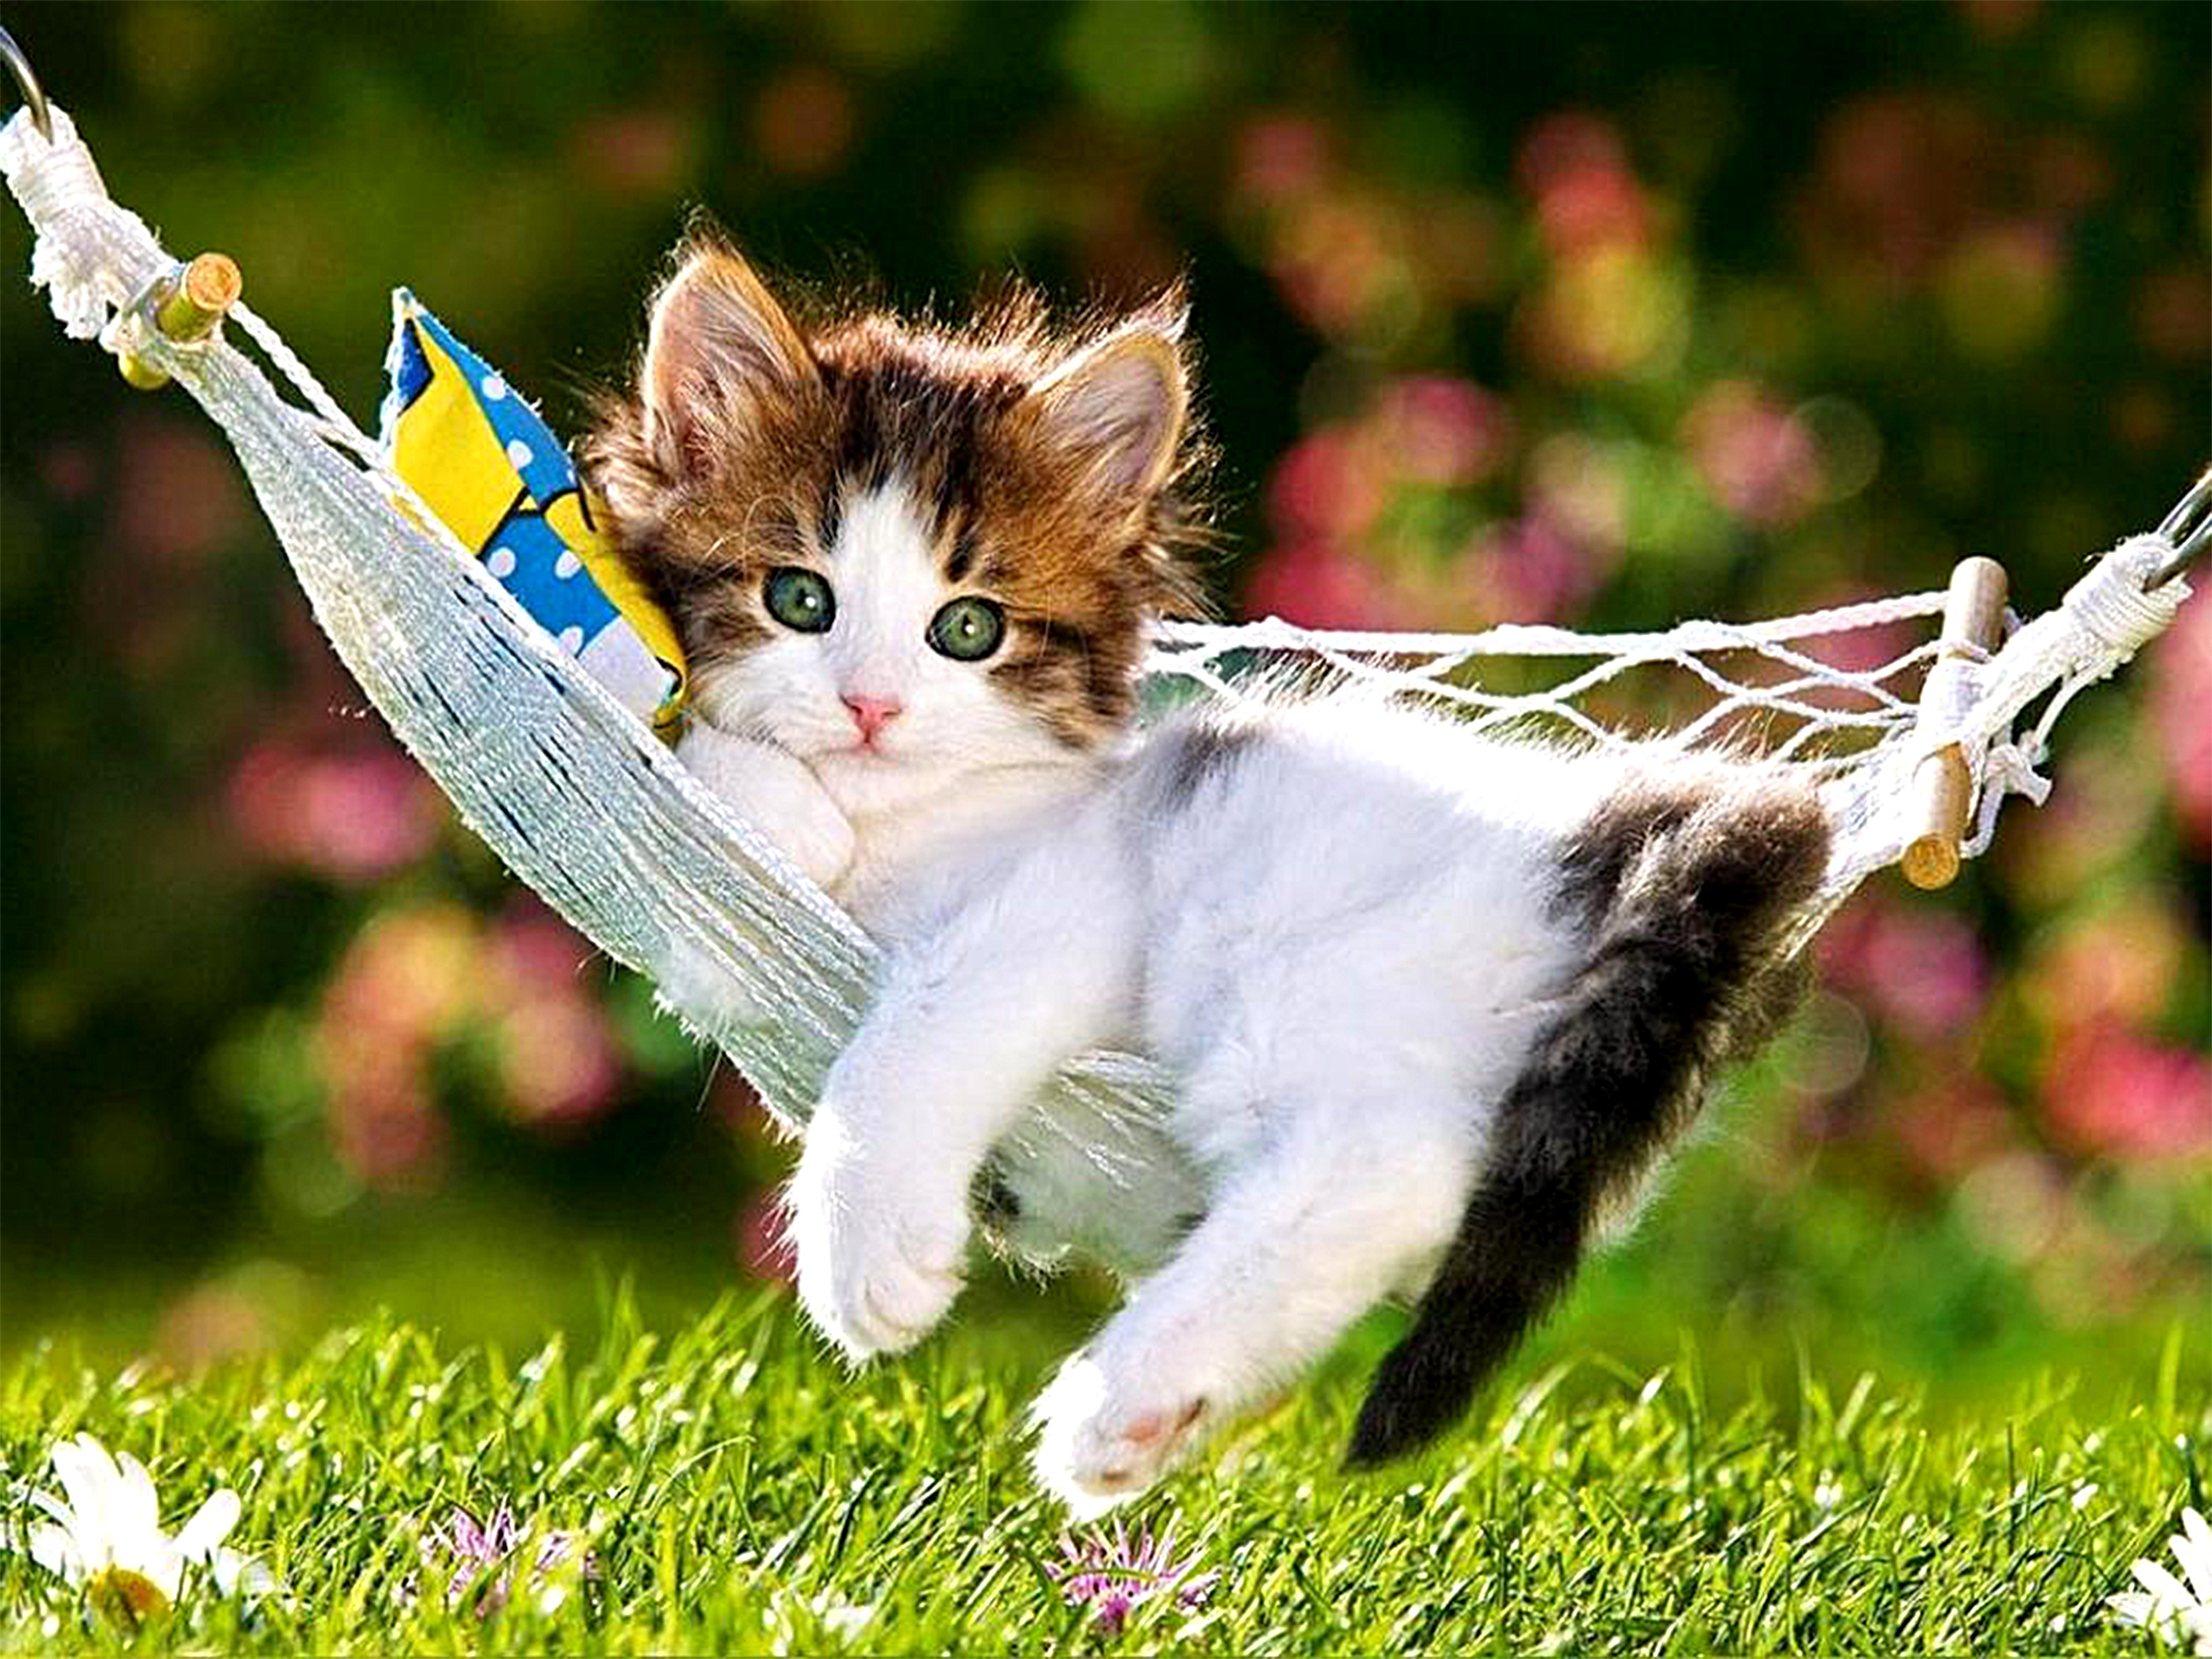 Adorable Kitten In Hammock Hd Wallpaper Background Image 2400x1800 Id 683021 Wallpaper Abyss